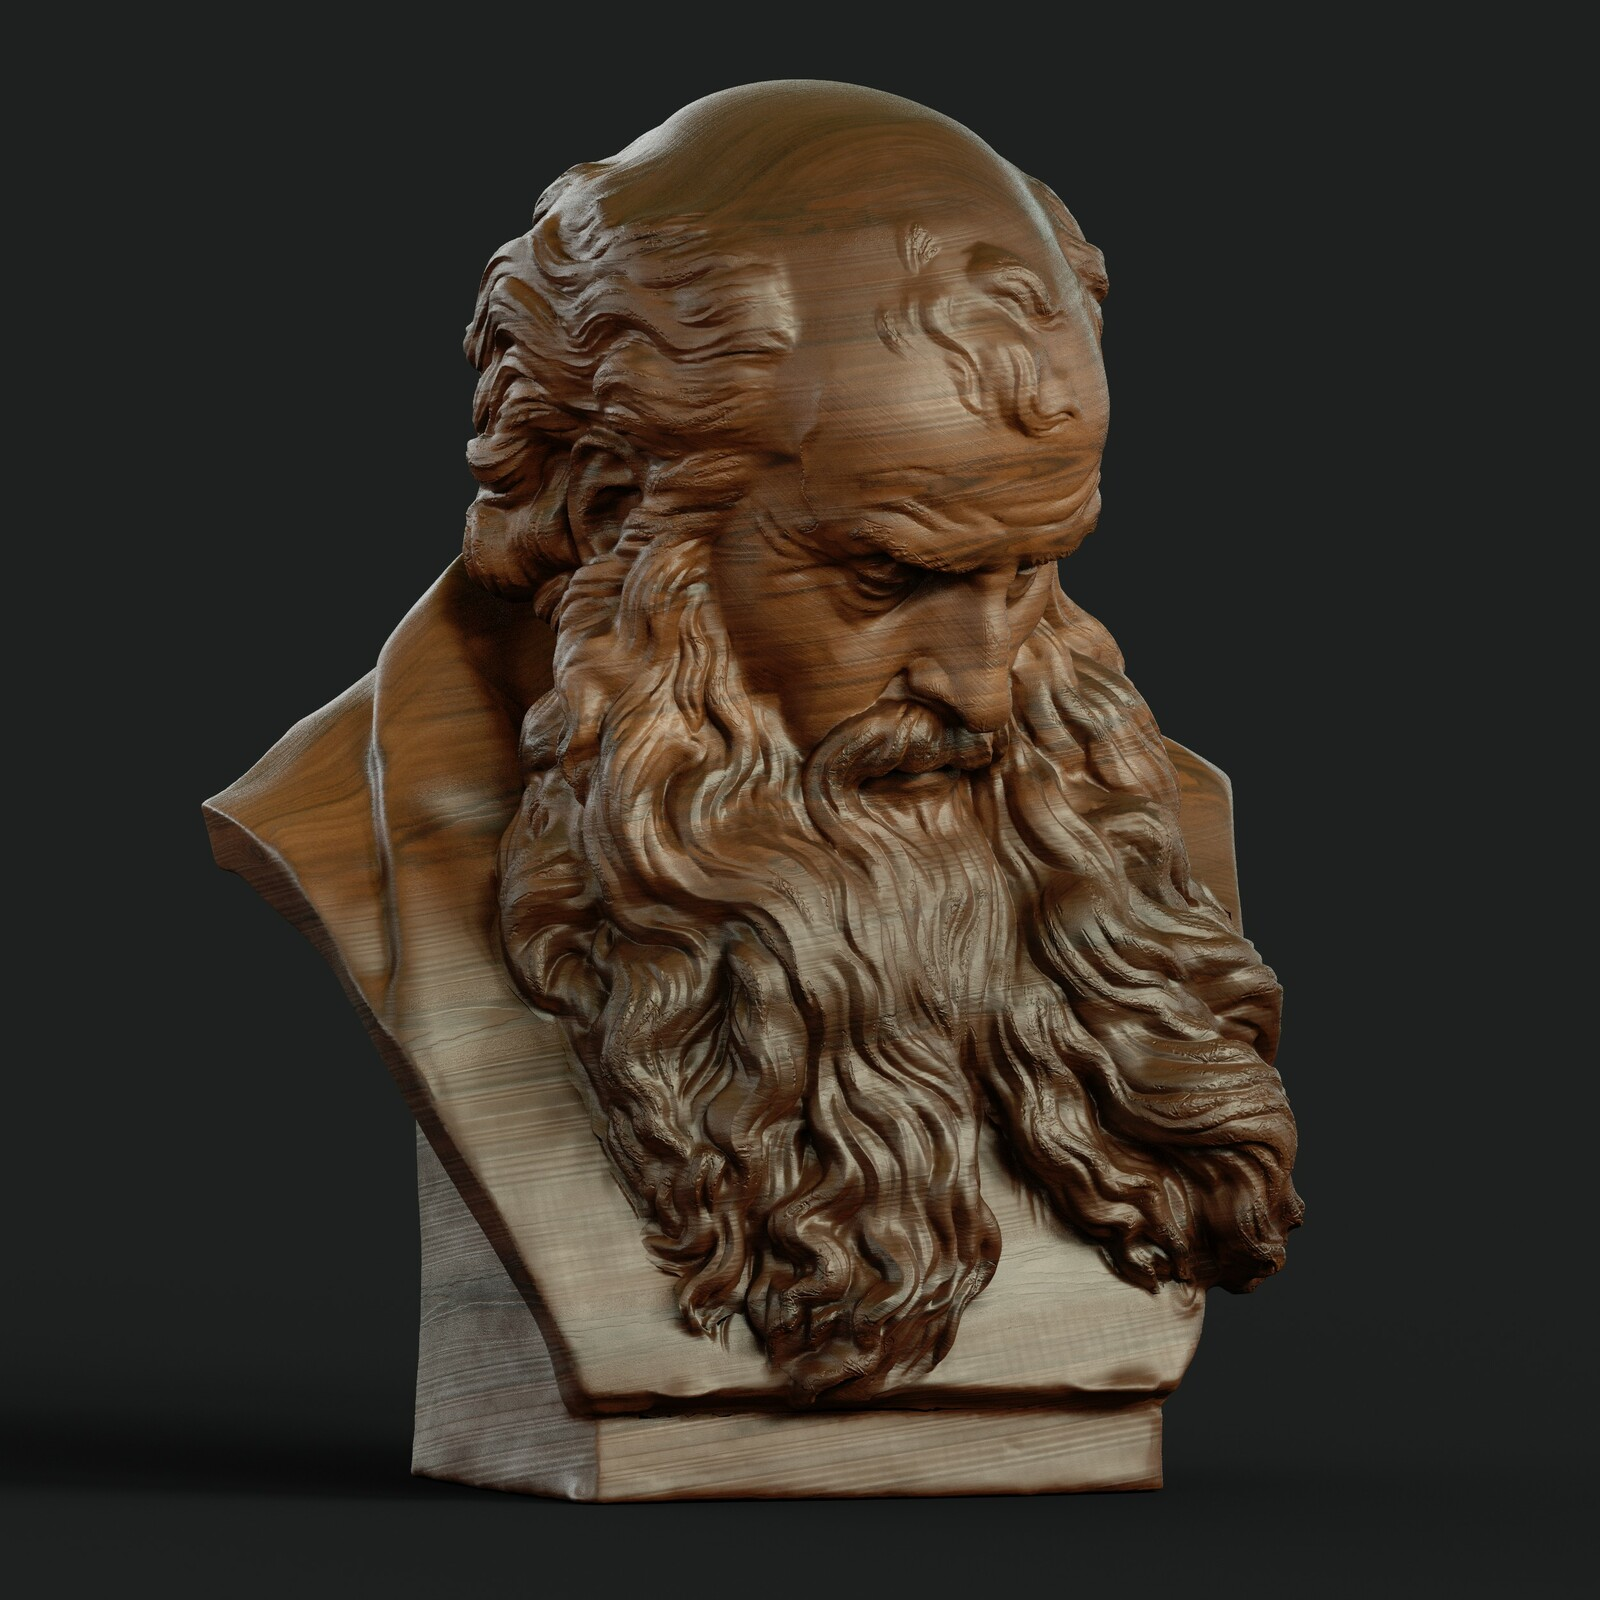 Head of a bearded old man from the Victoria & Albert Museum - London